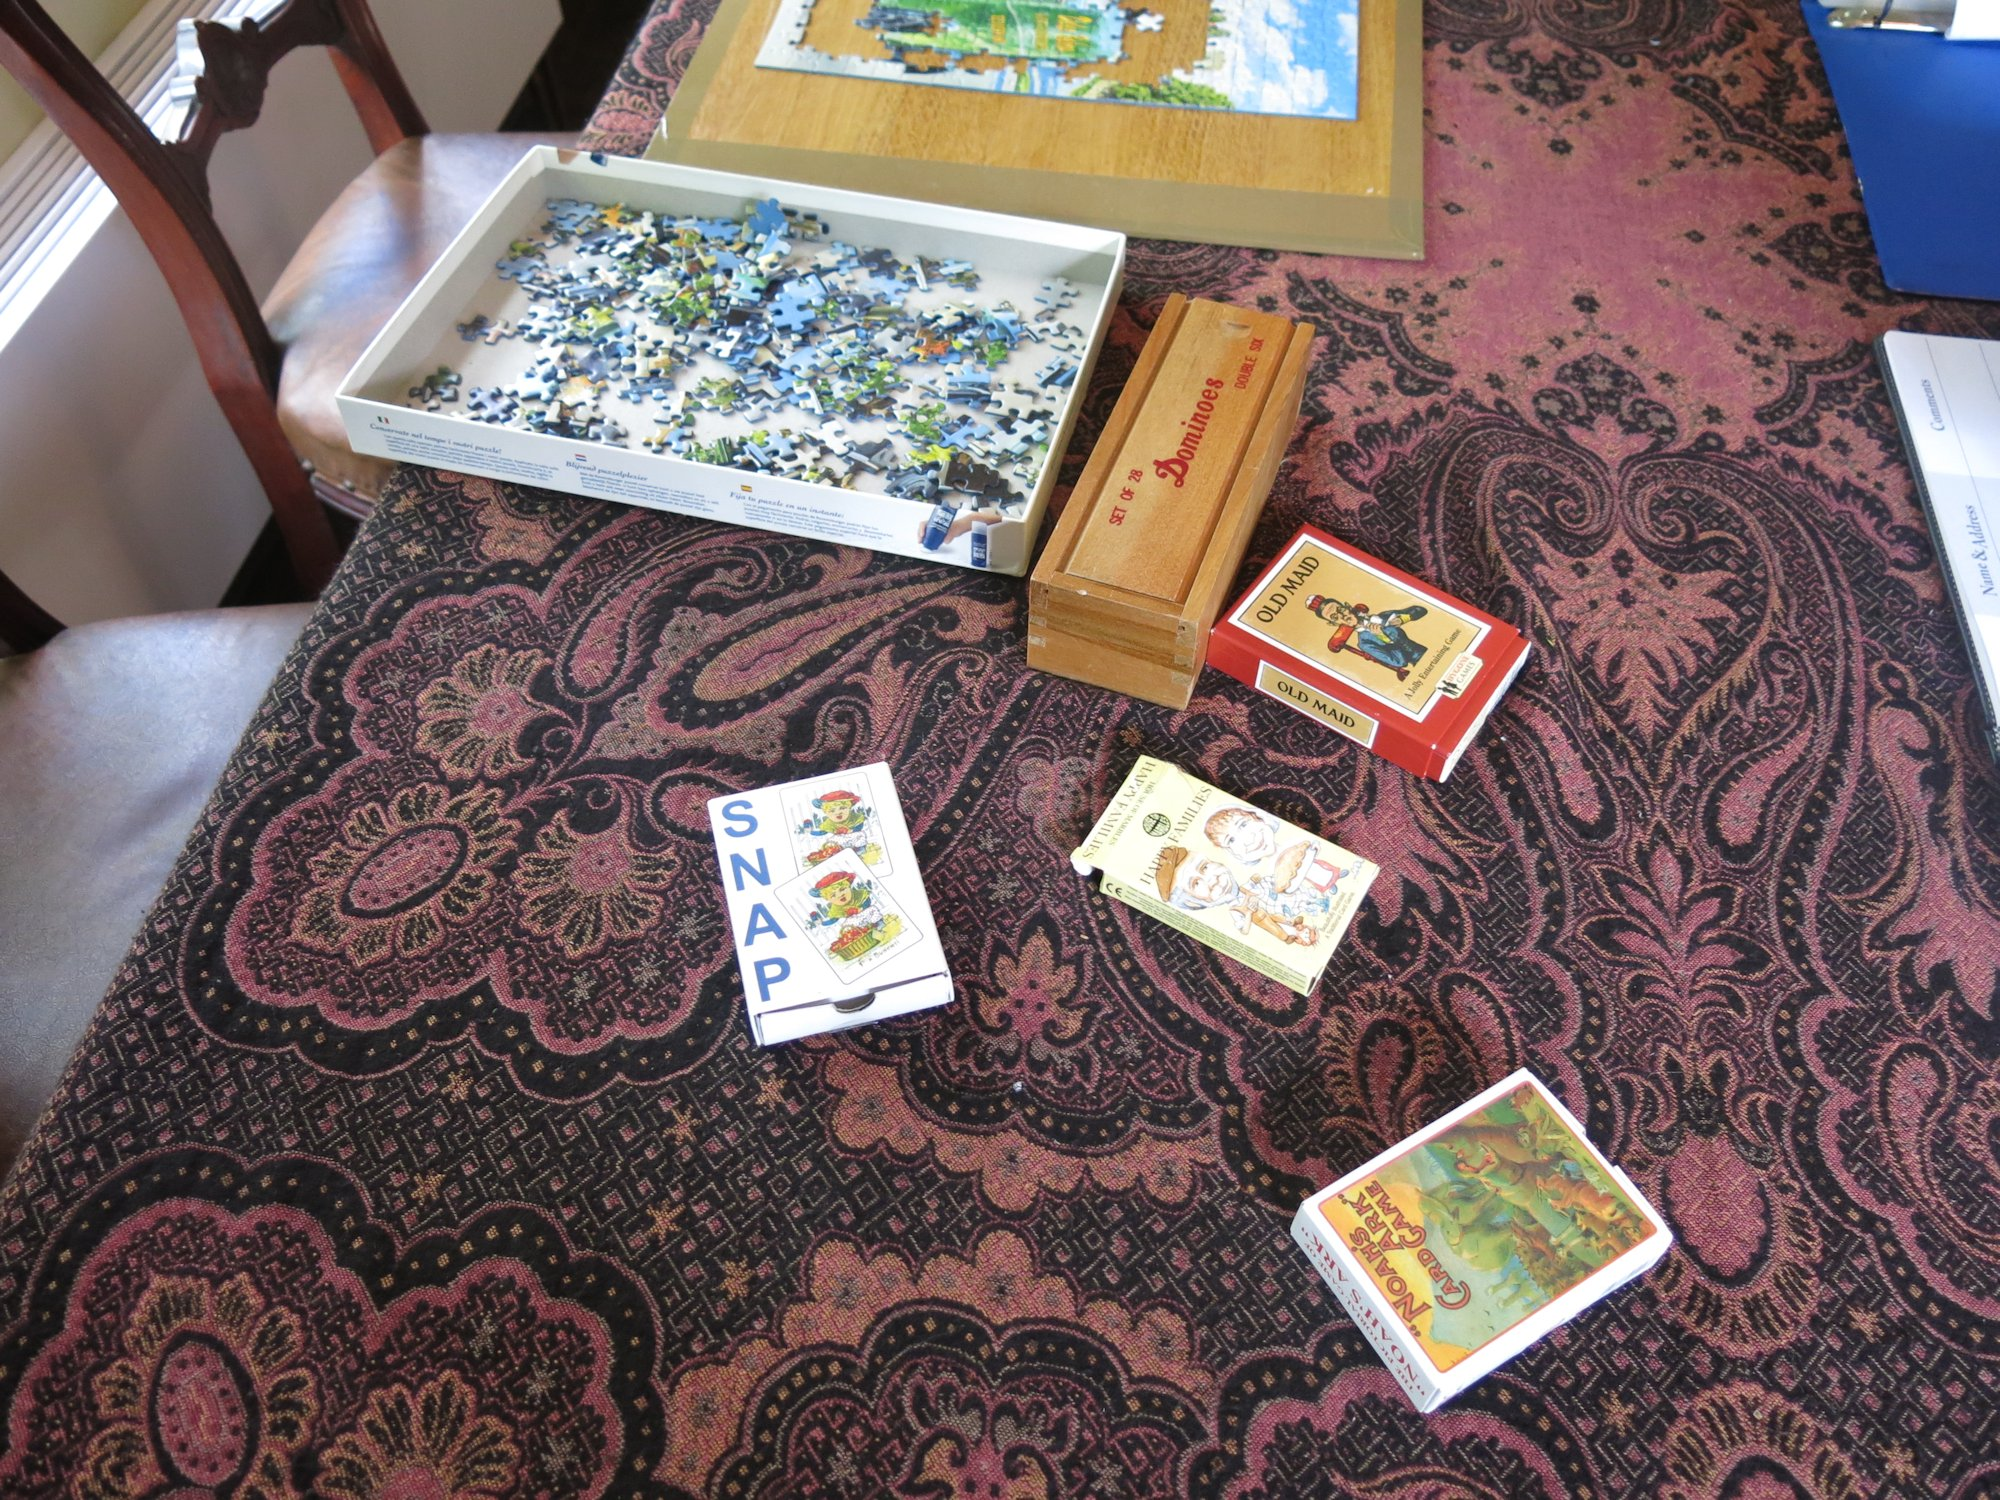 Children's games, cards and jigsaws